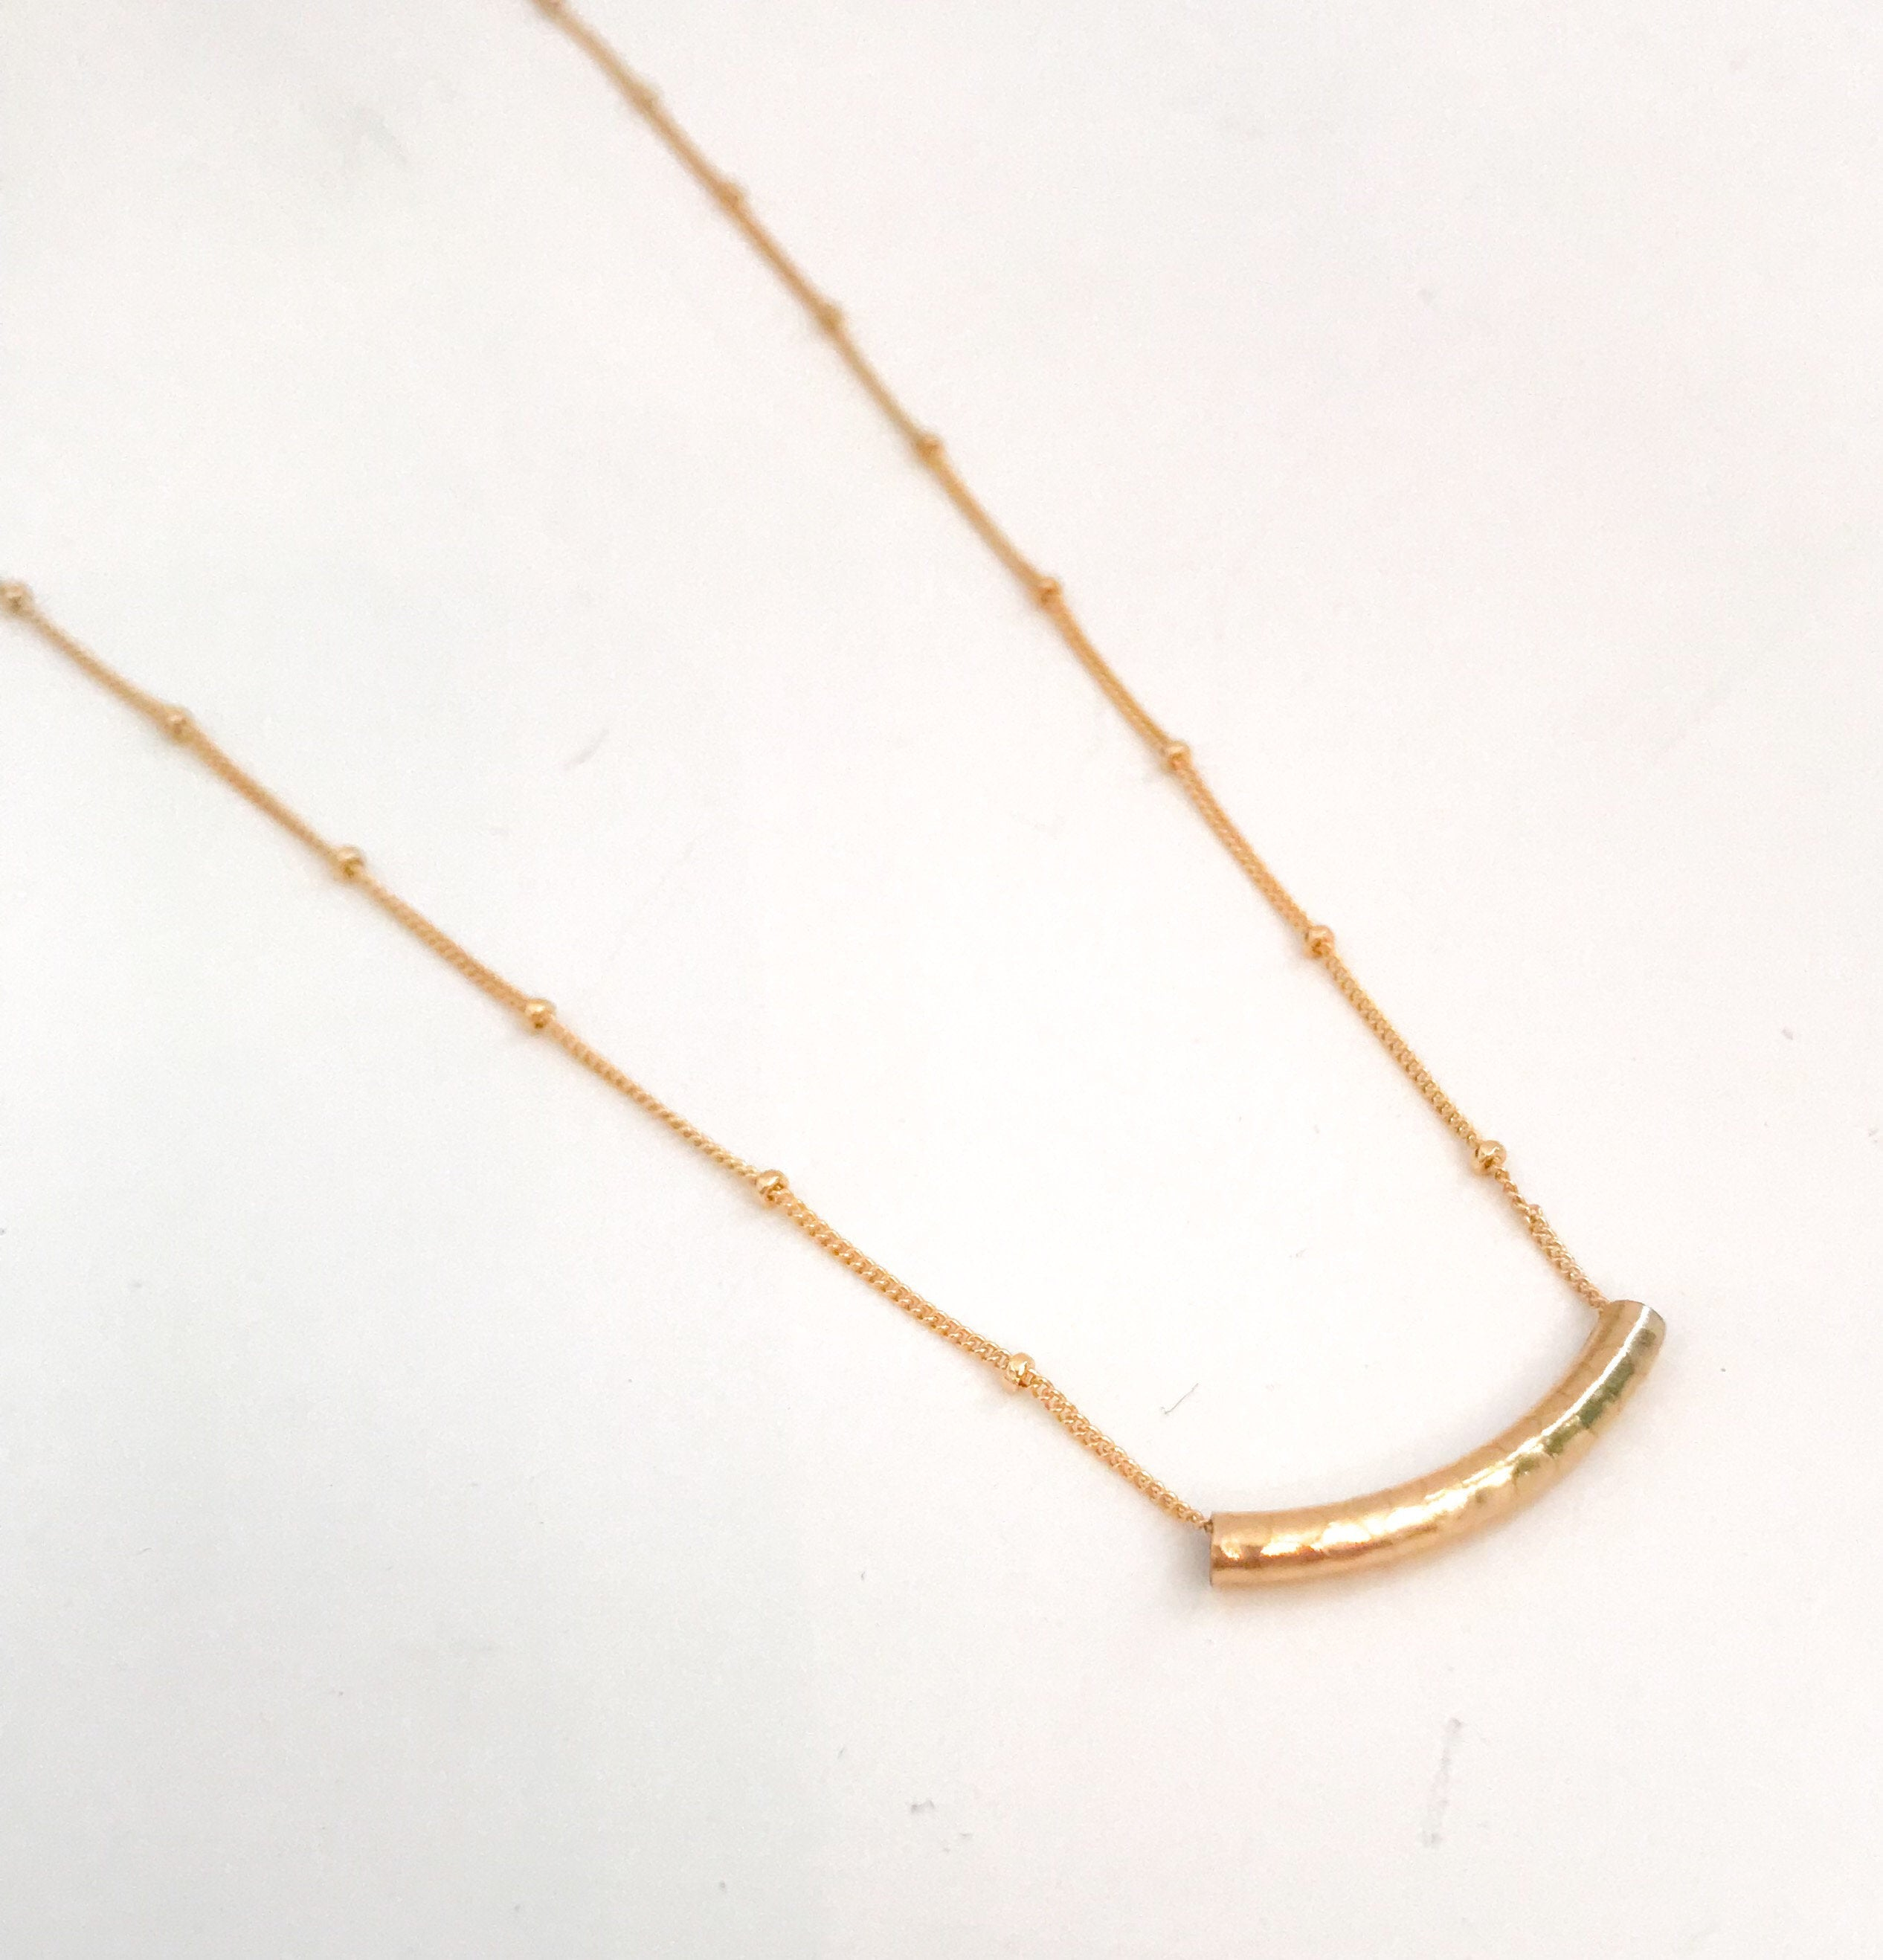 Simple Gold Minimalist Necklace/ Simple Bar necklace/ Necklace for layering